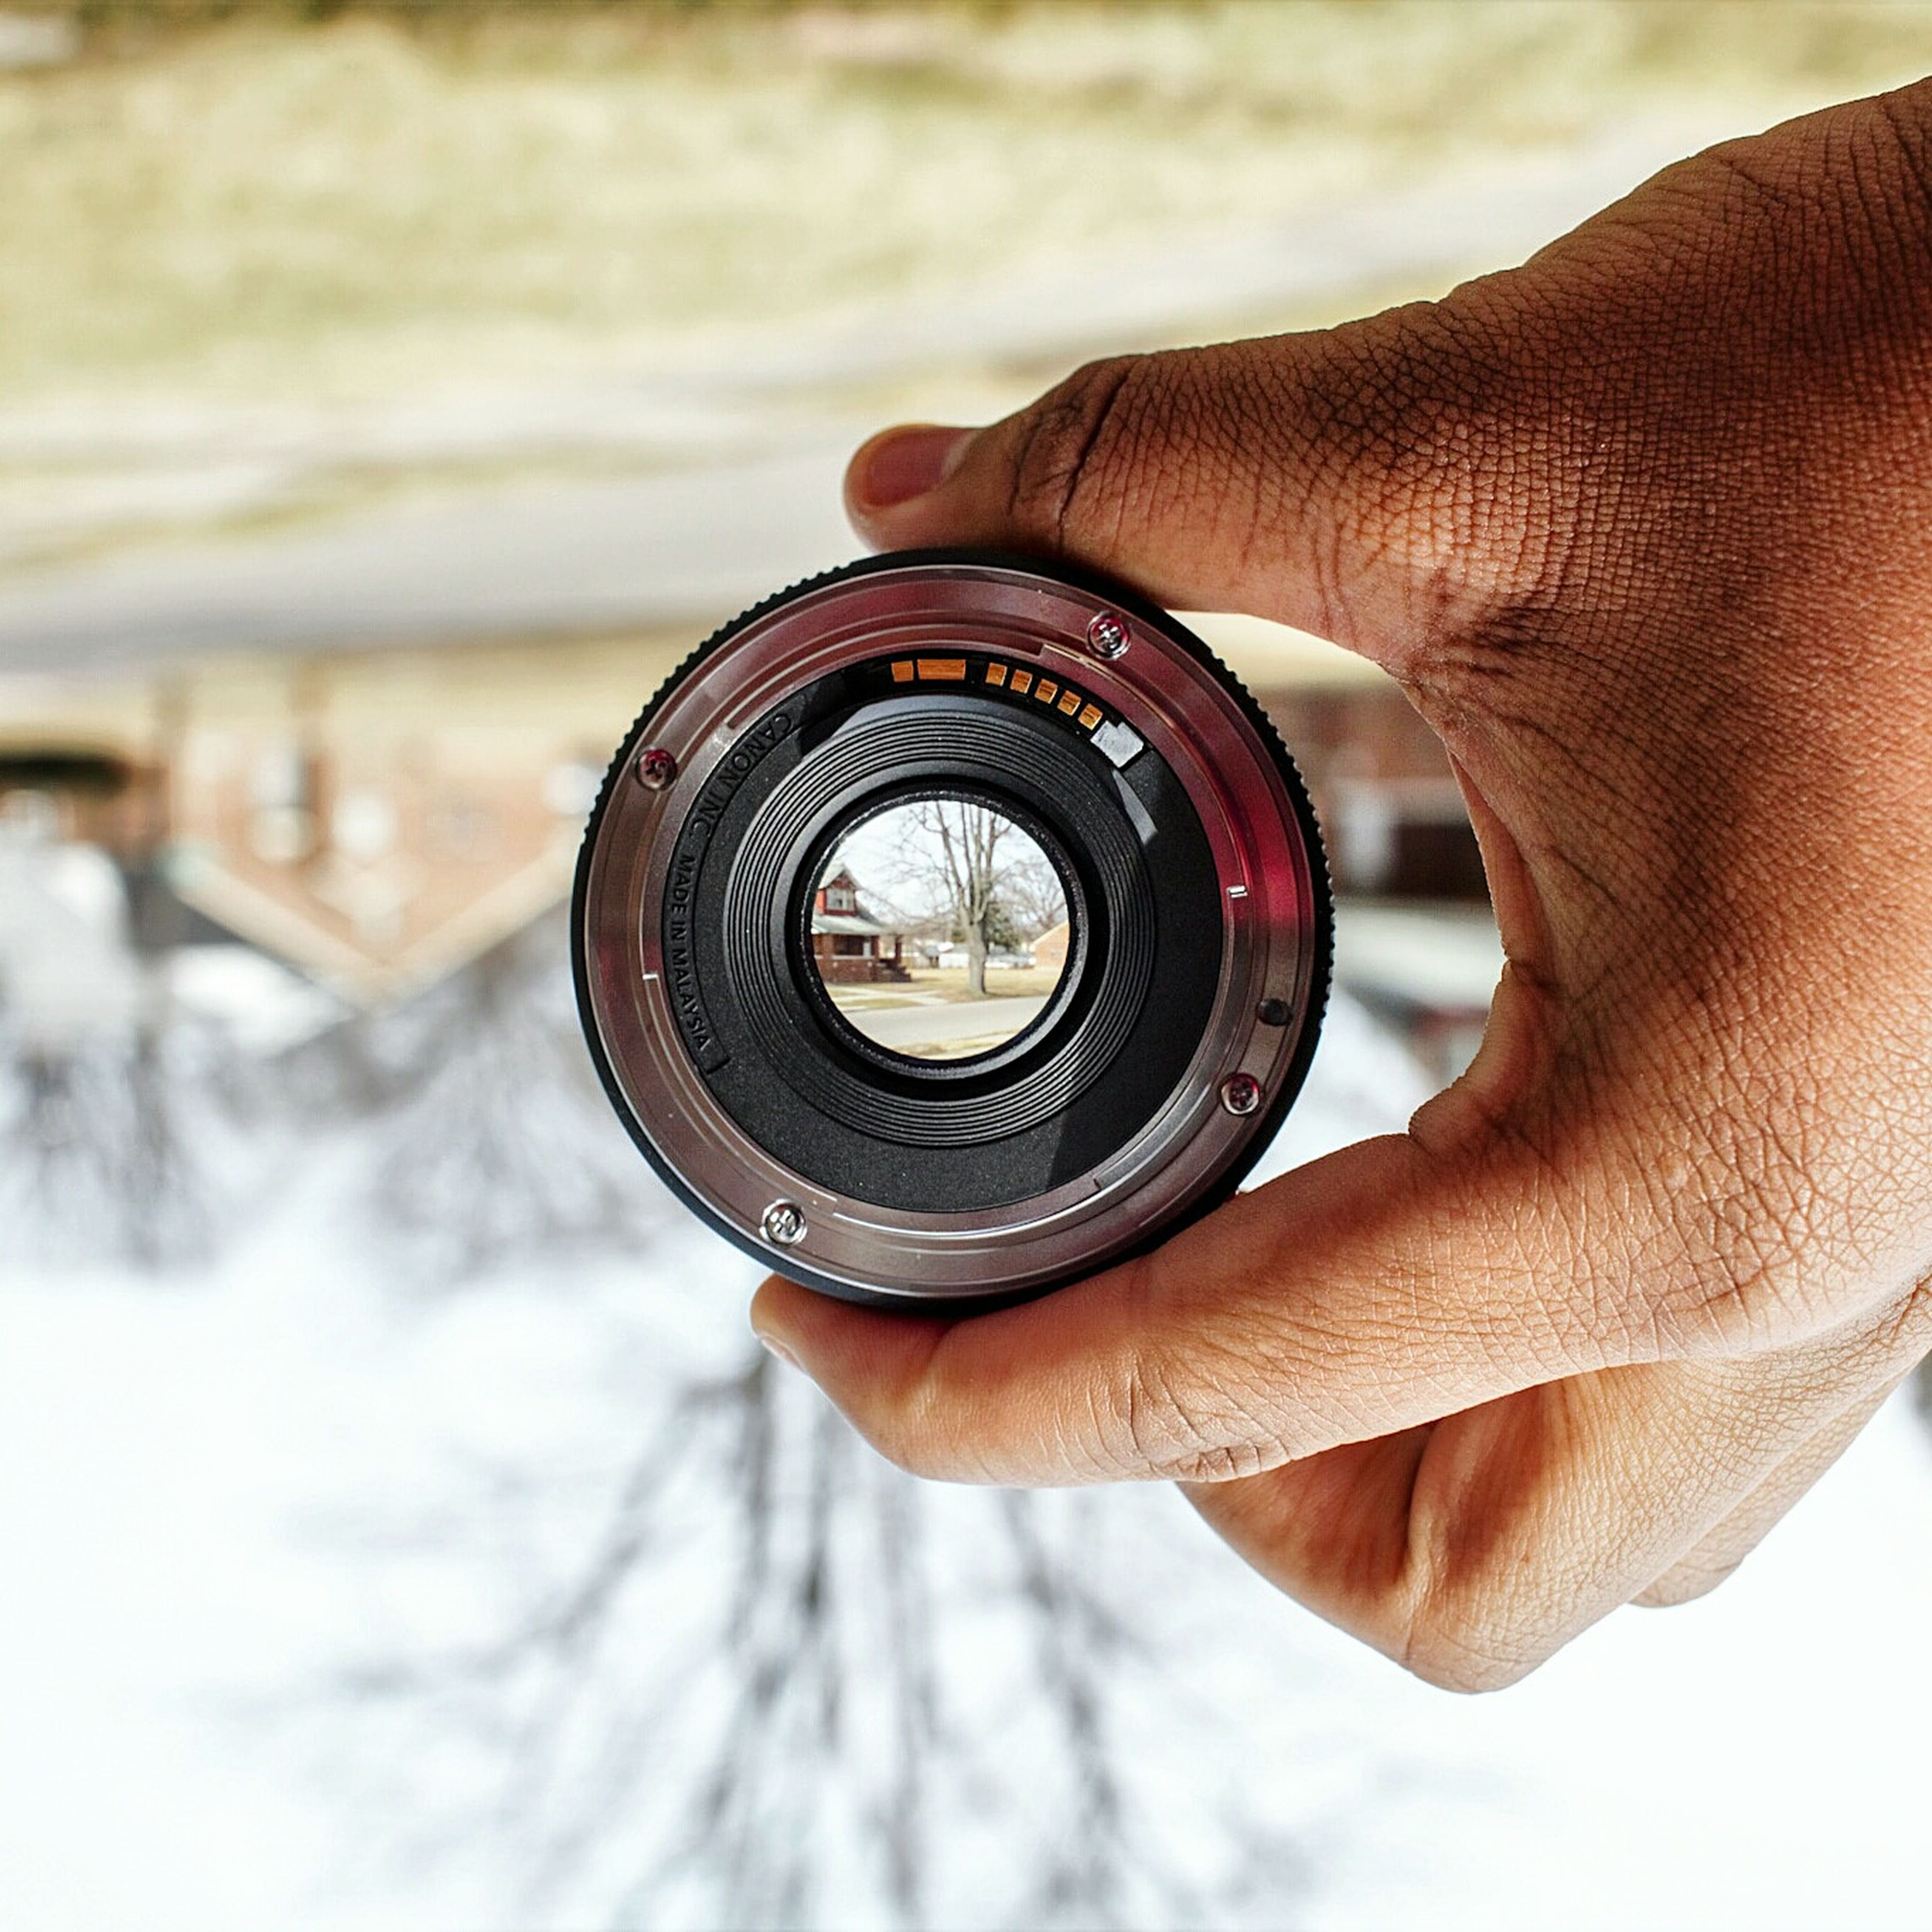 close-up, part of, focus on foreground, person, cropped, spiral, circle, photography themes, metal, day, single object, holding, outdoors, selective focus, sunglasses, unrecognizable person, technology